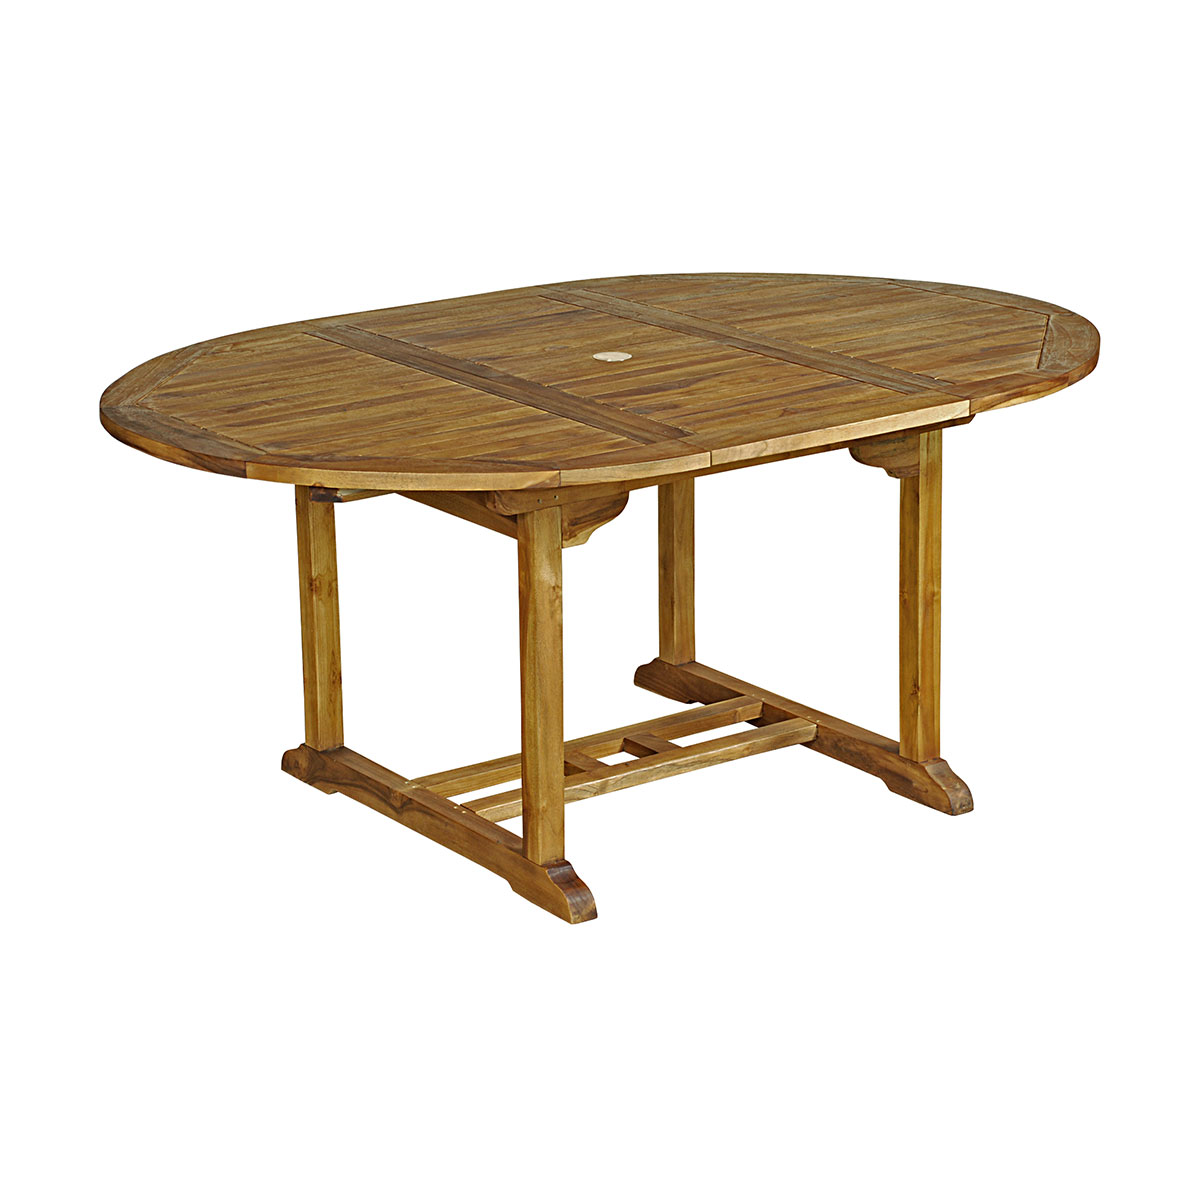 Table ronde Baya 120/170x120x75 cm en Teck Huilé 4/6 places